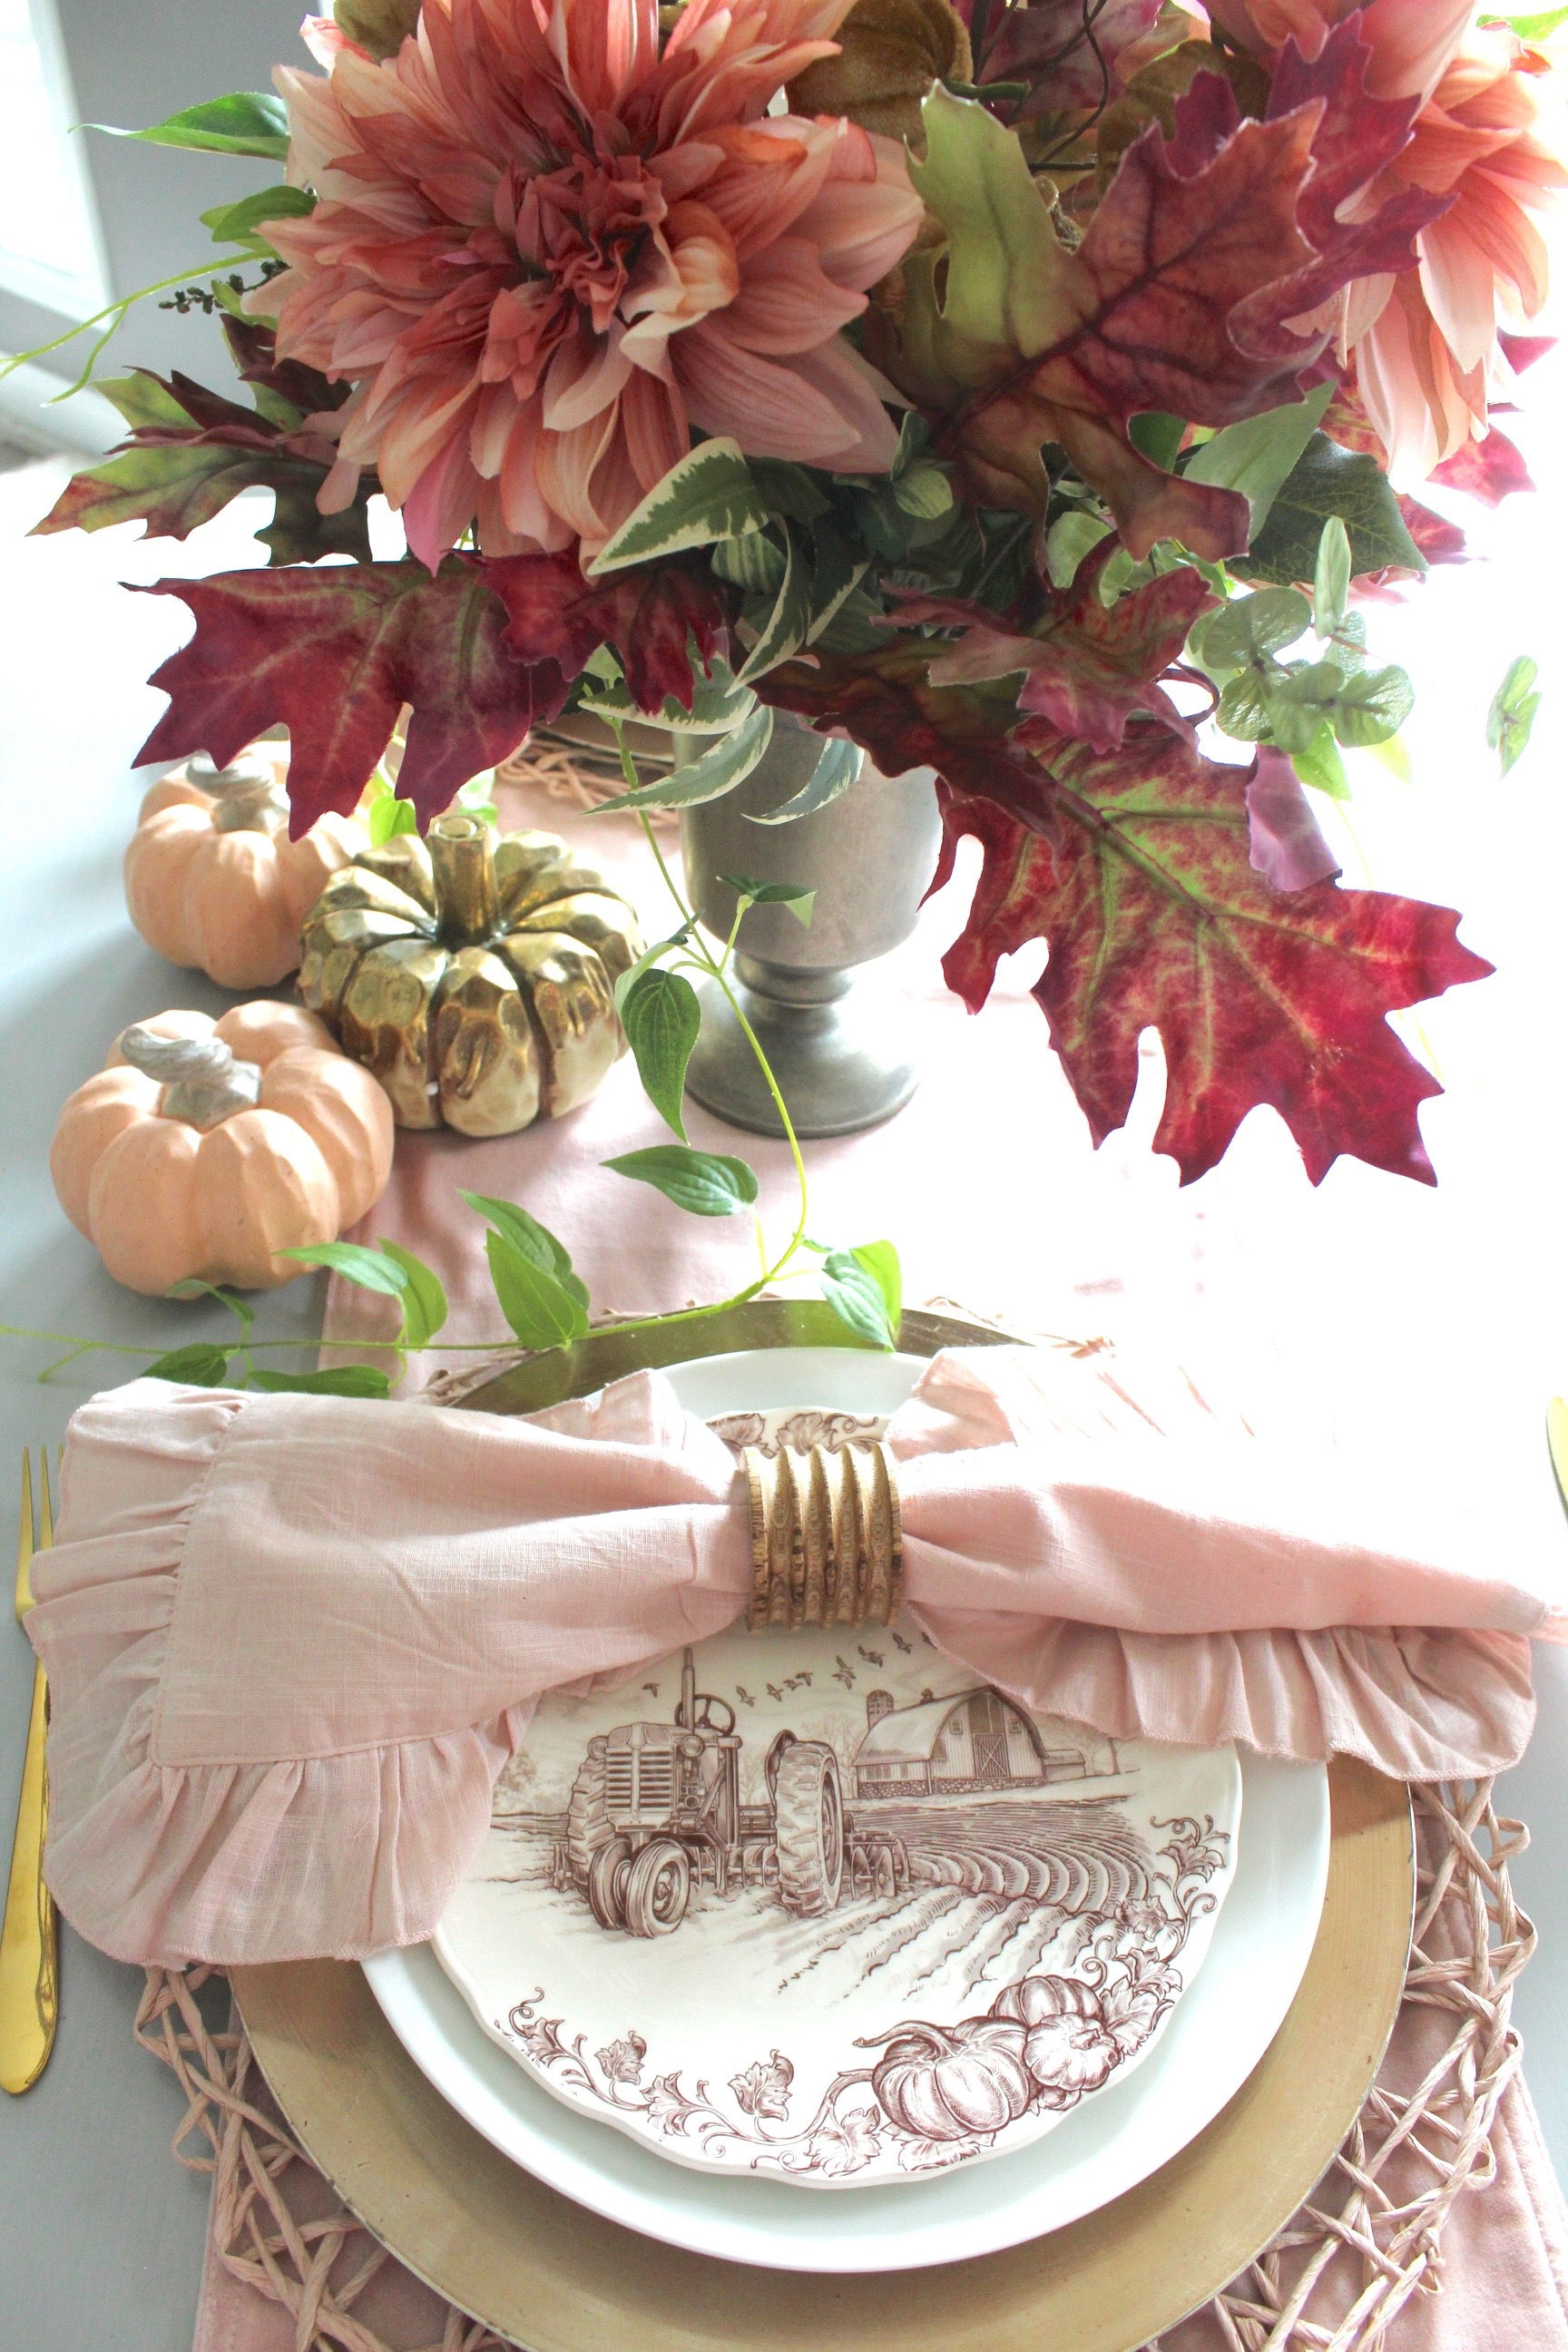 rich jewel tones - fall tablescape